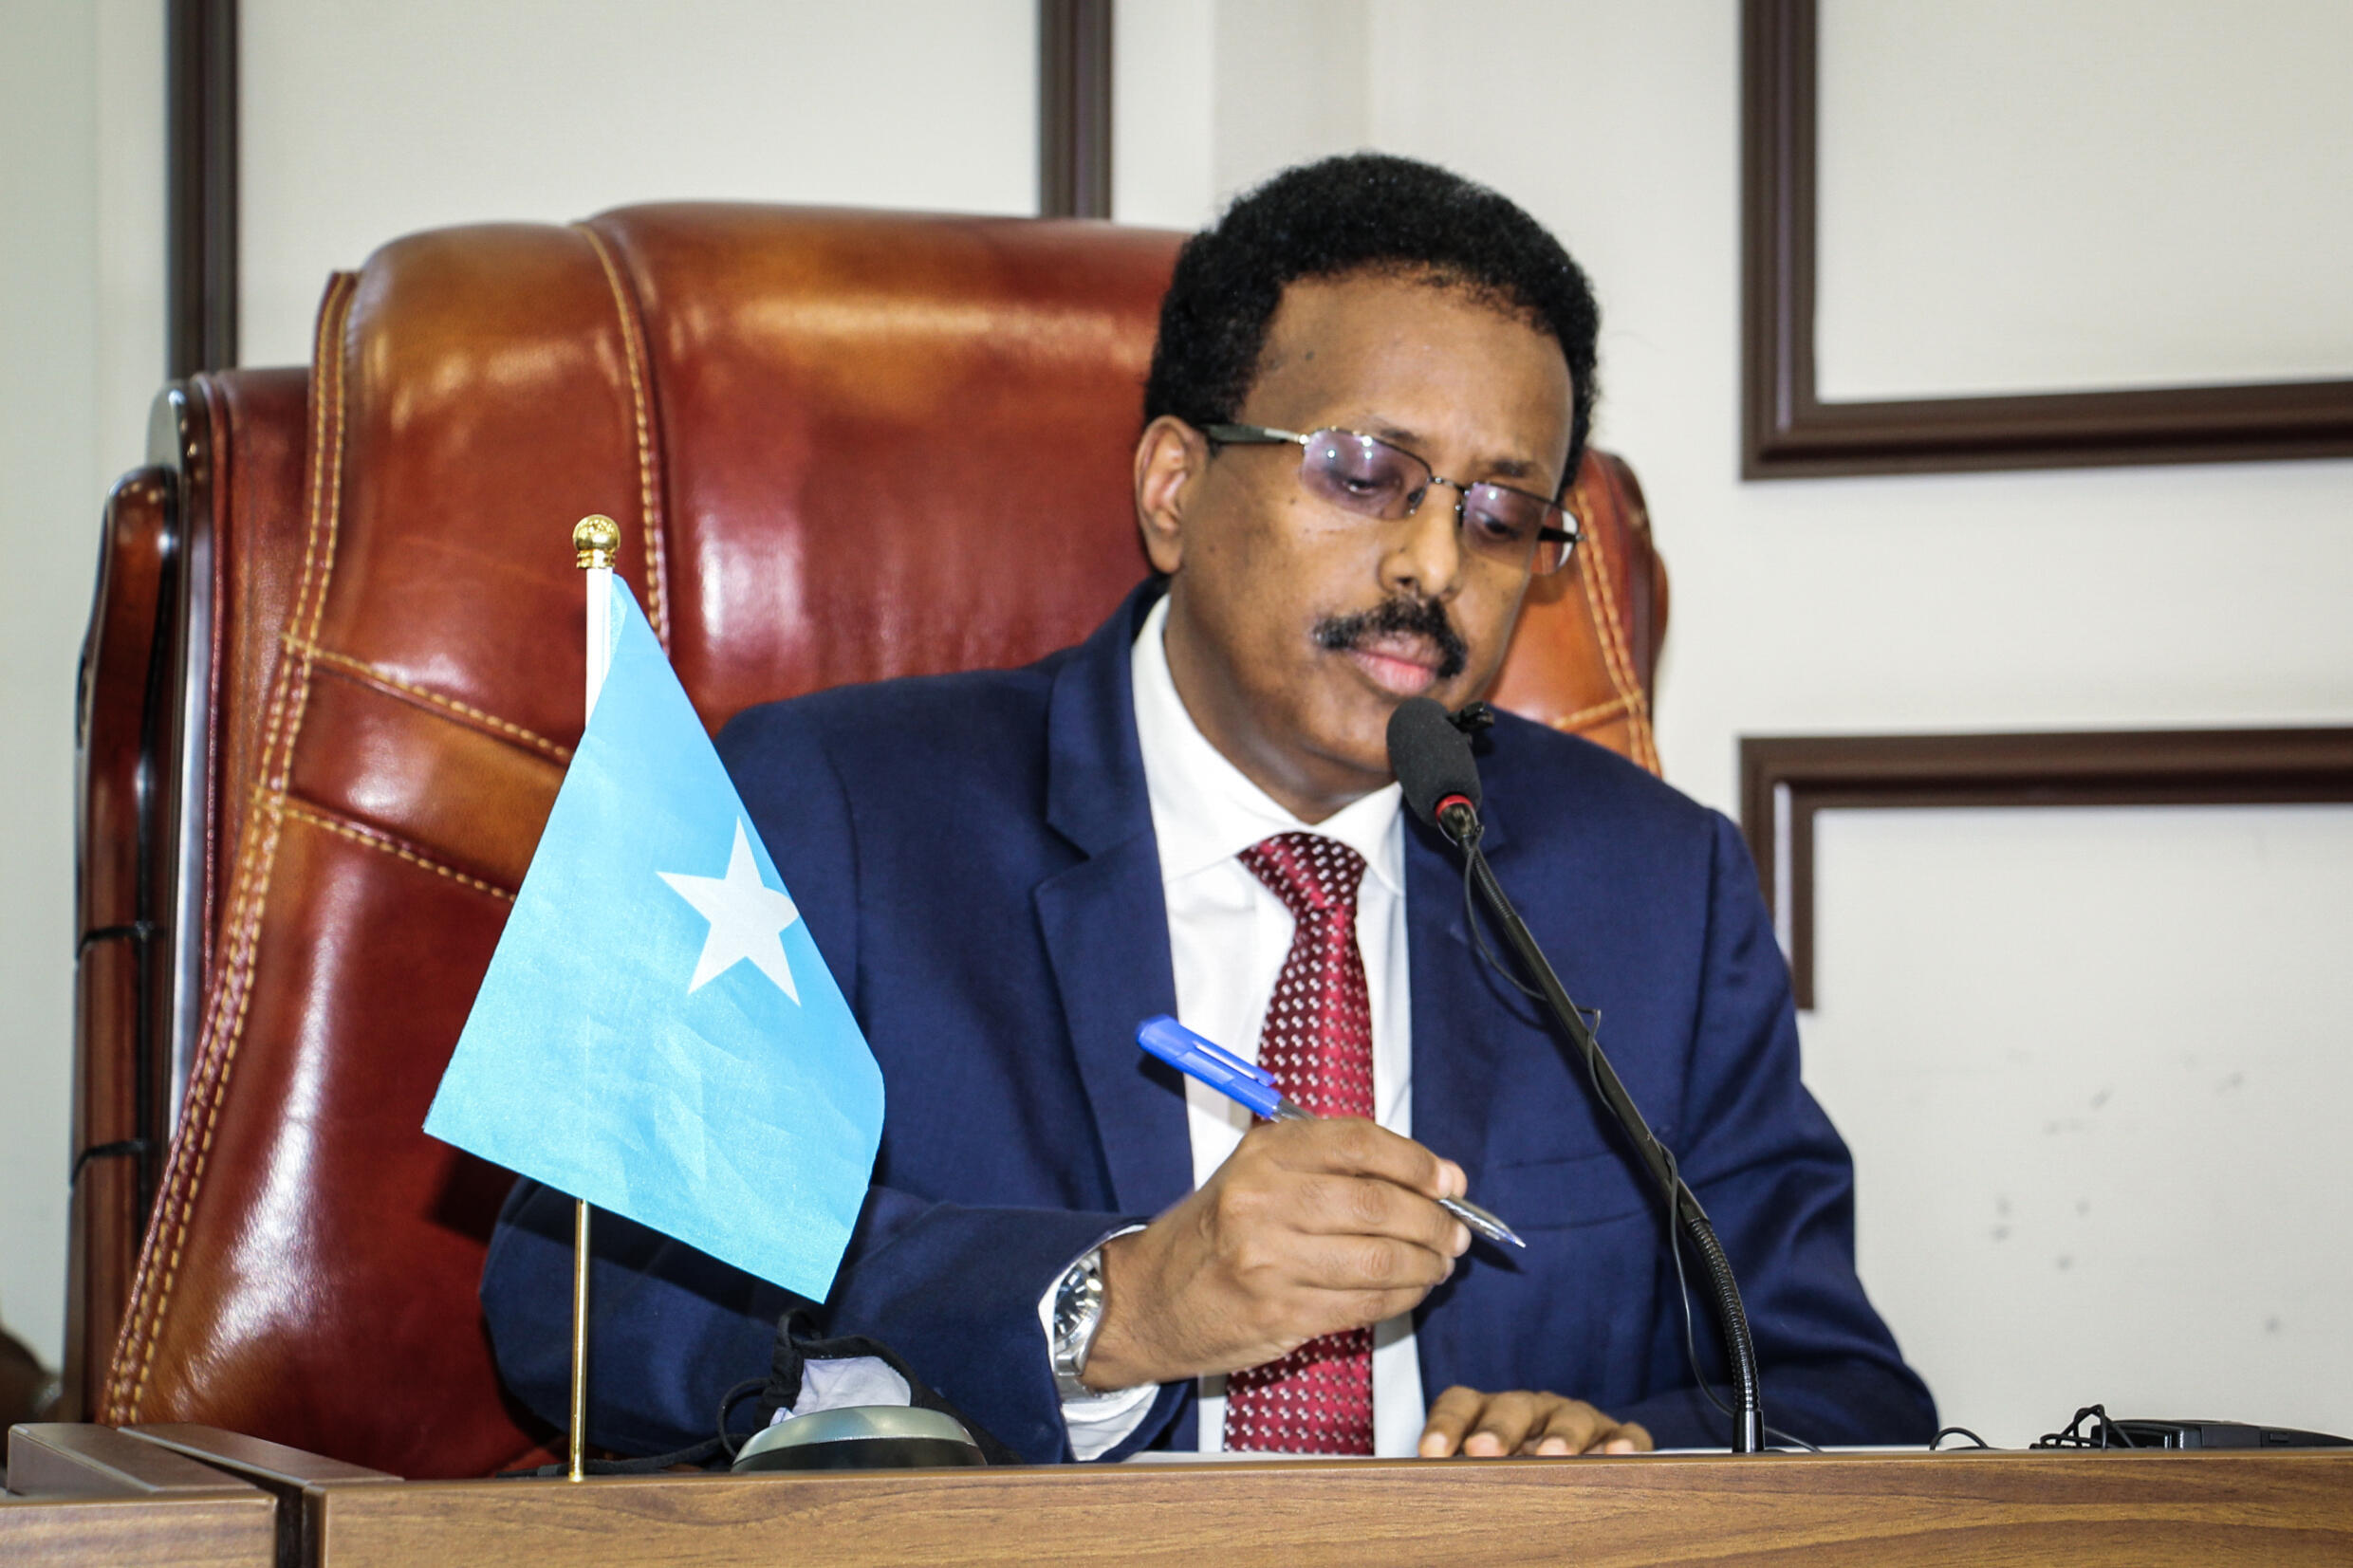 President Mohamed Abdullahi Mohamed triggered Somalia's worst political violence in years by seeking to extend his mandate without elections